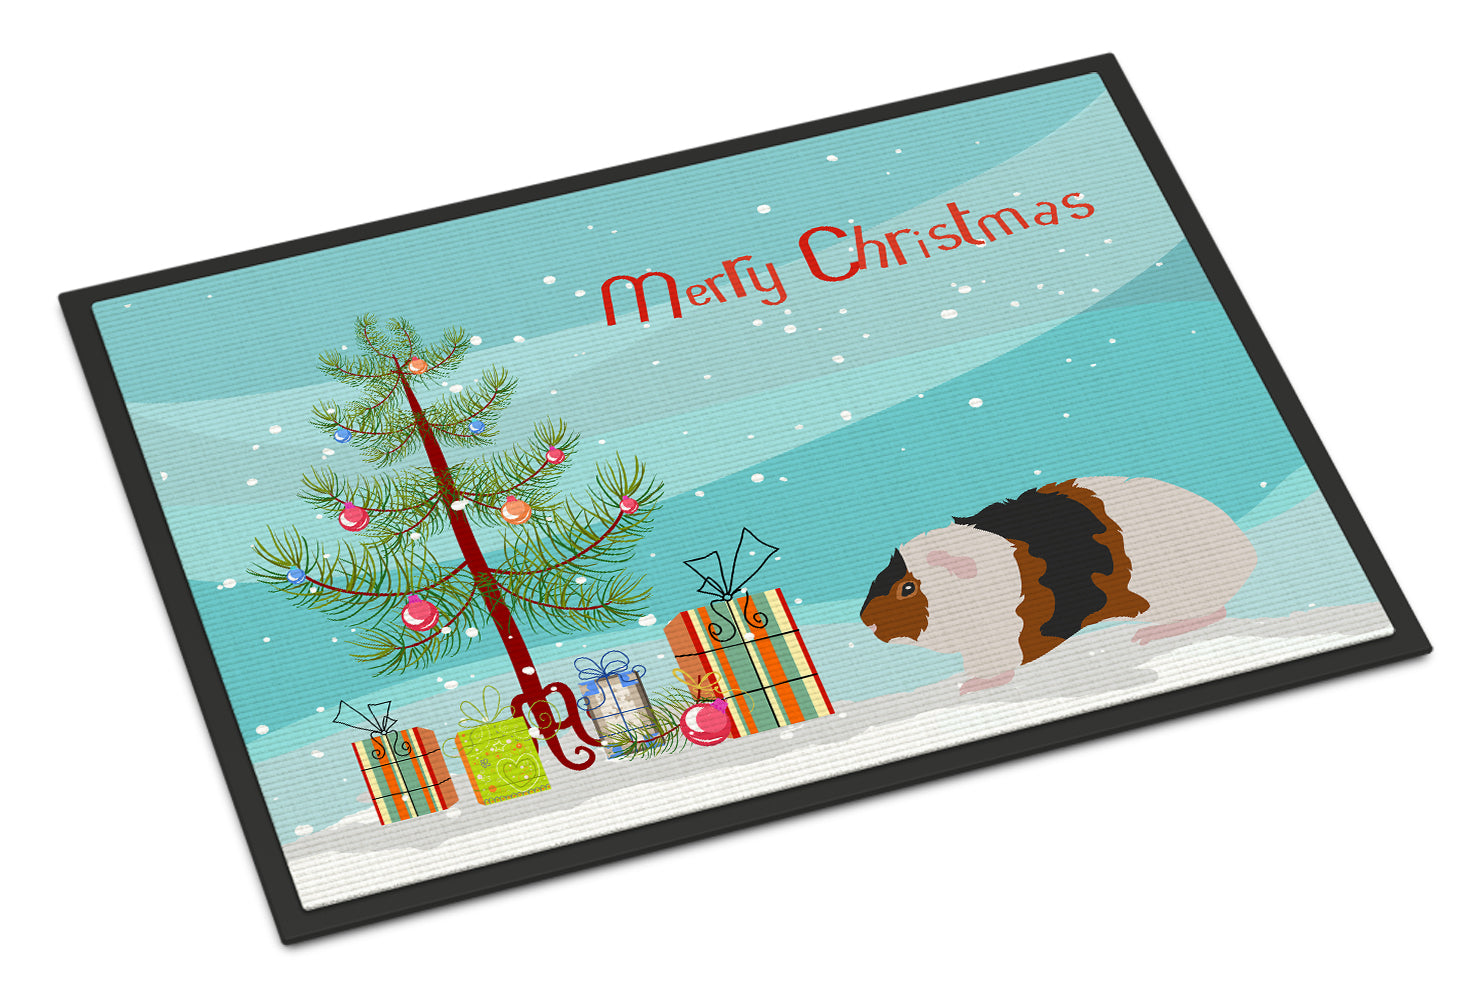 Teddy Guinea Pig Merry Christmas Indoor or Outdoor Mat 18x27 CK4448MAT by Caroline's Treasures